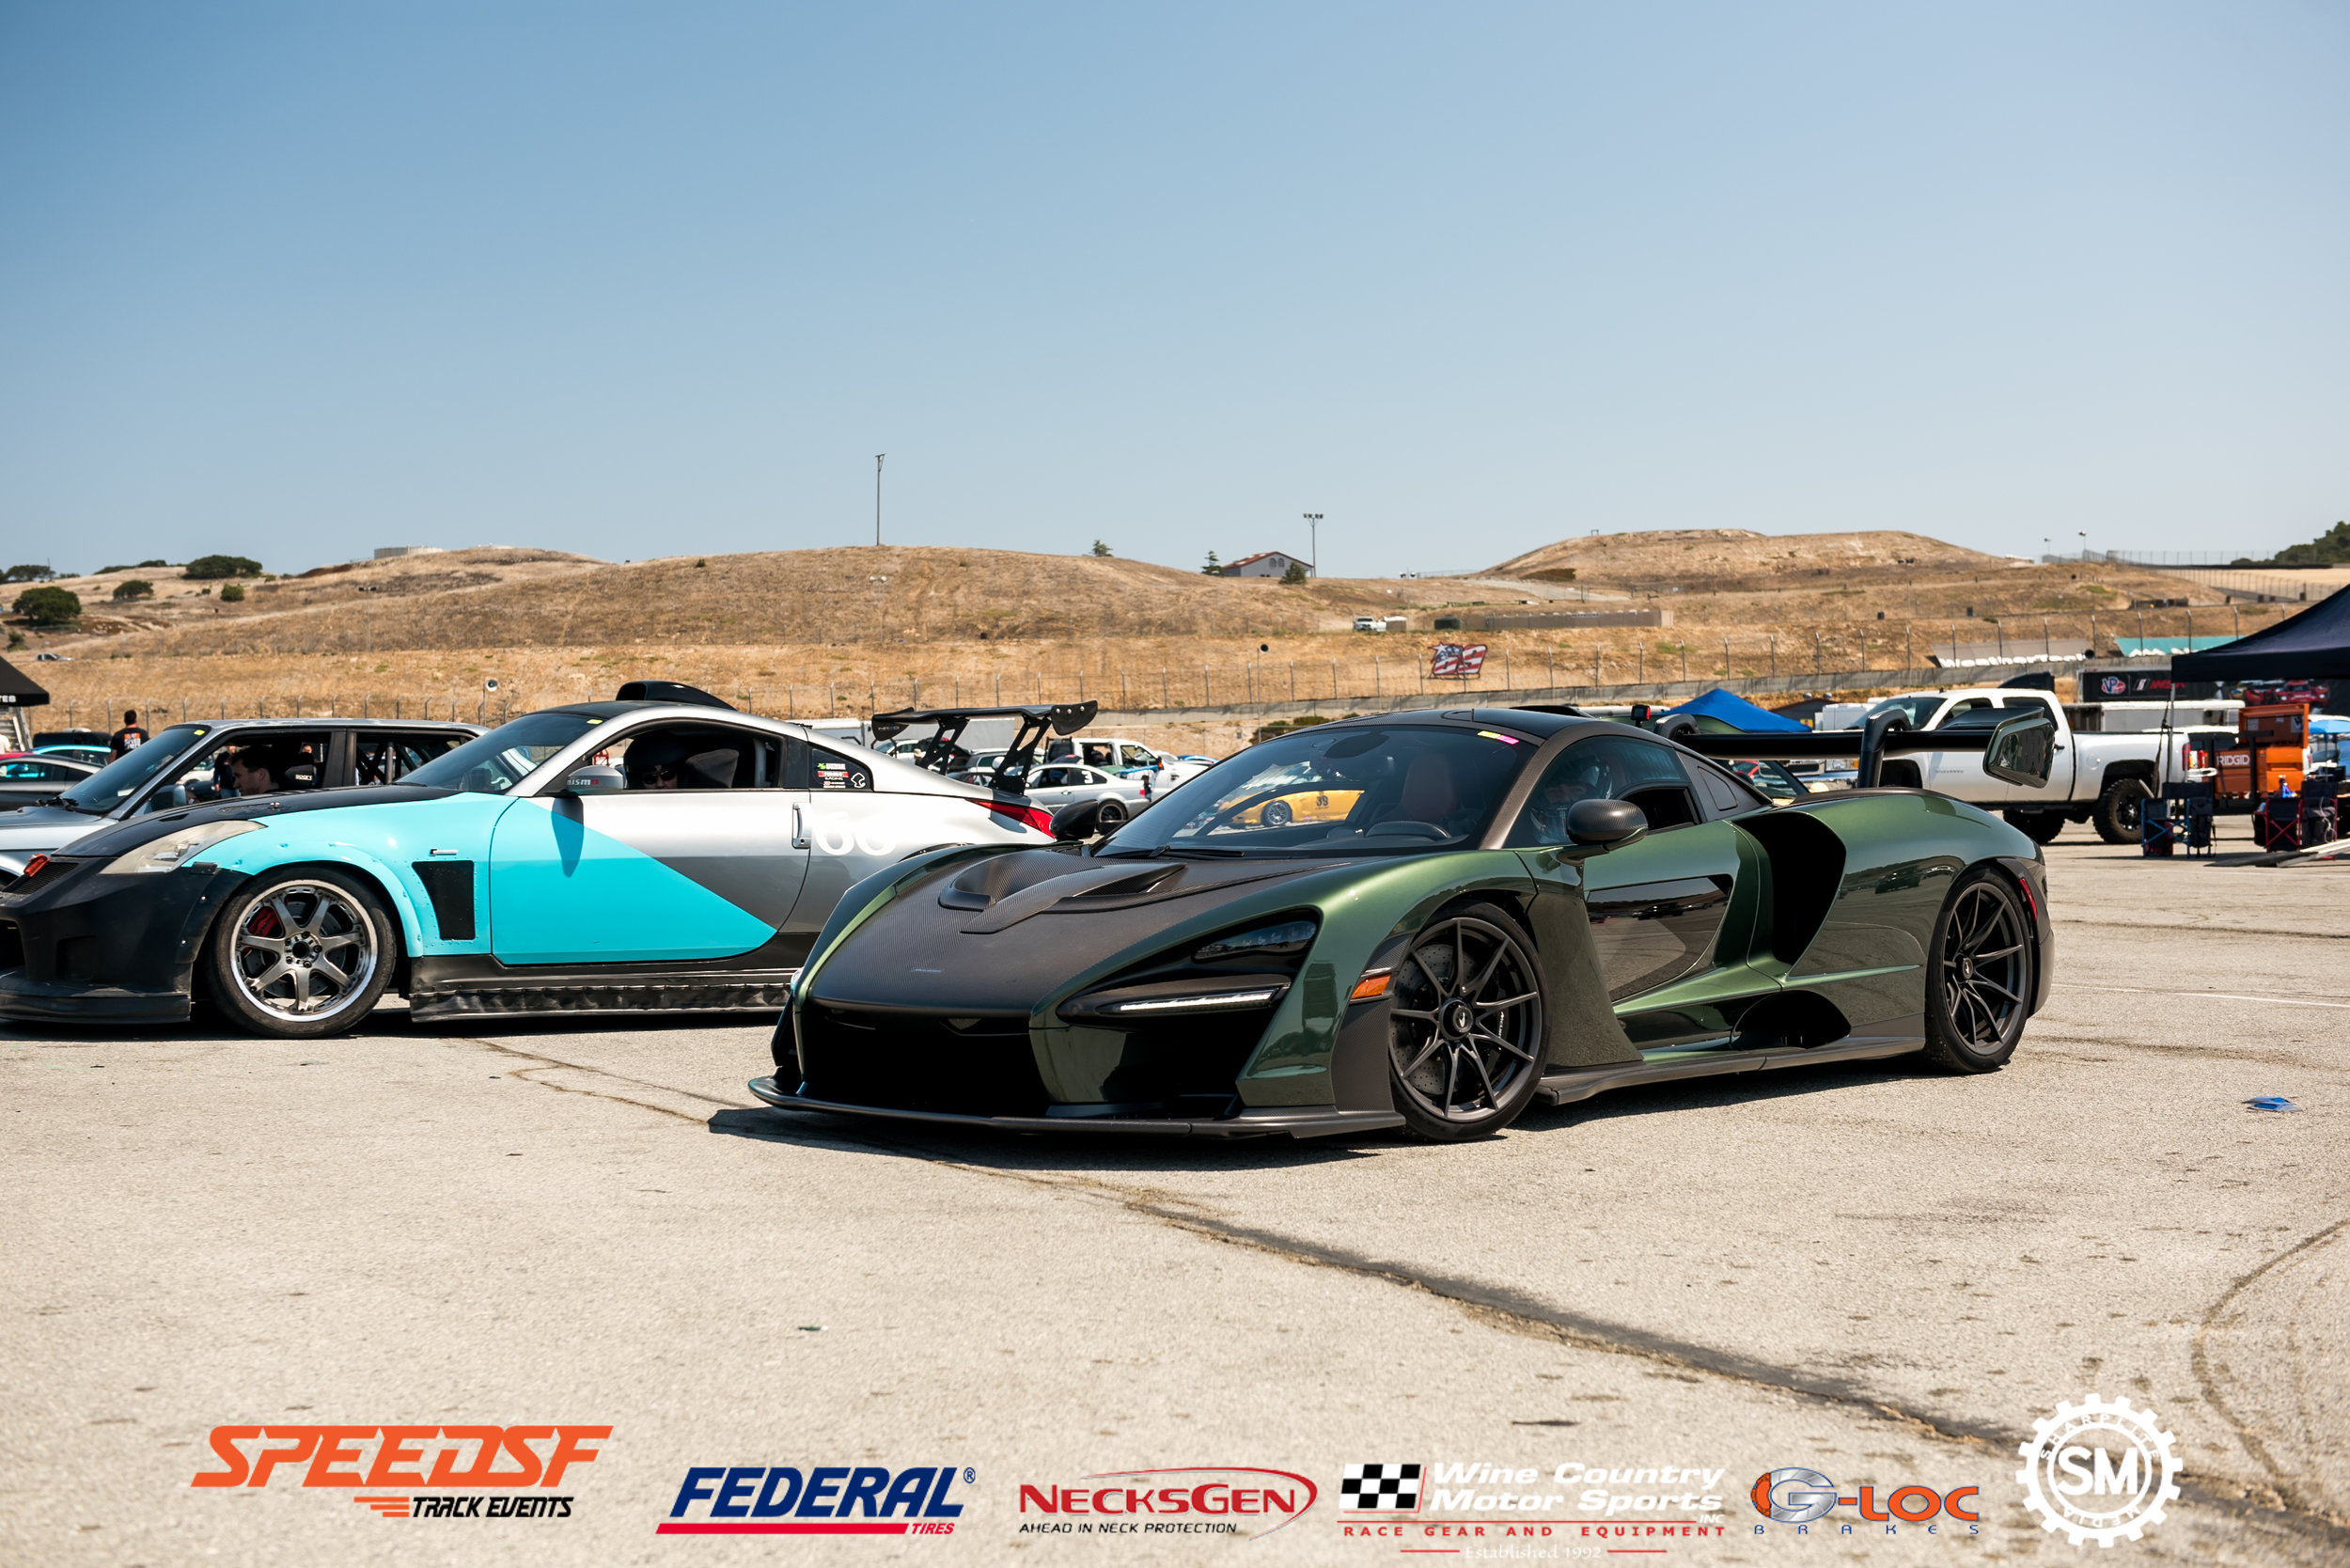 SpeedSF Paddock Sunday-43.jpg